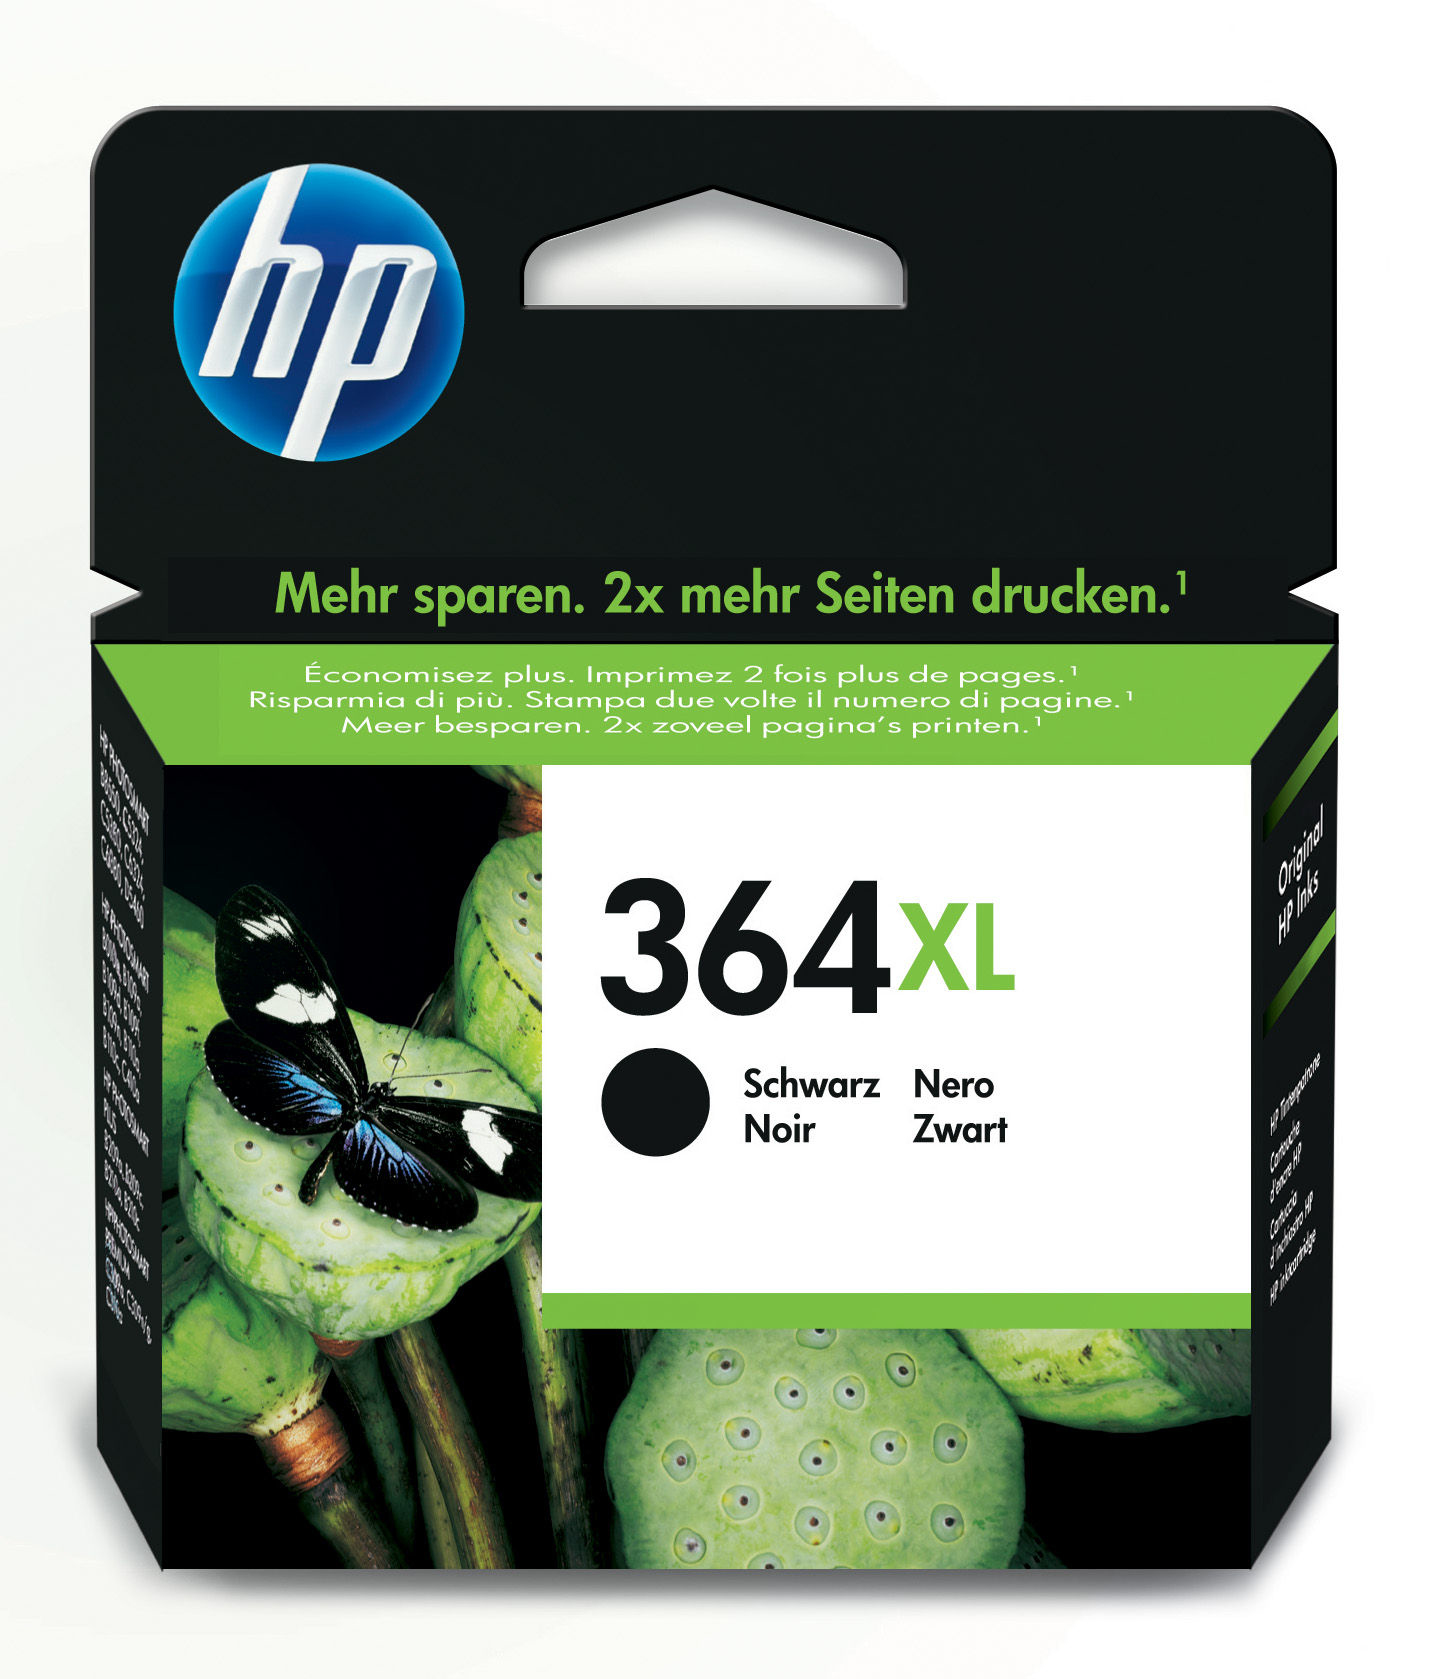 Hp - Inkjet Supply (pl1n) Mvs    Ink Cartridge No 364 Xl             Black                               Cn684ee#abb